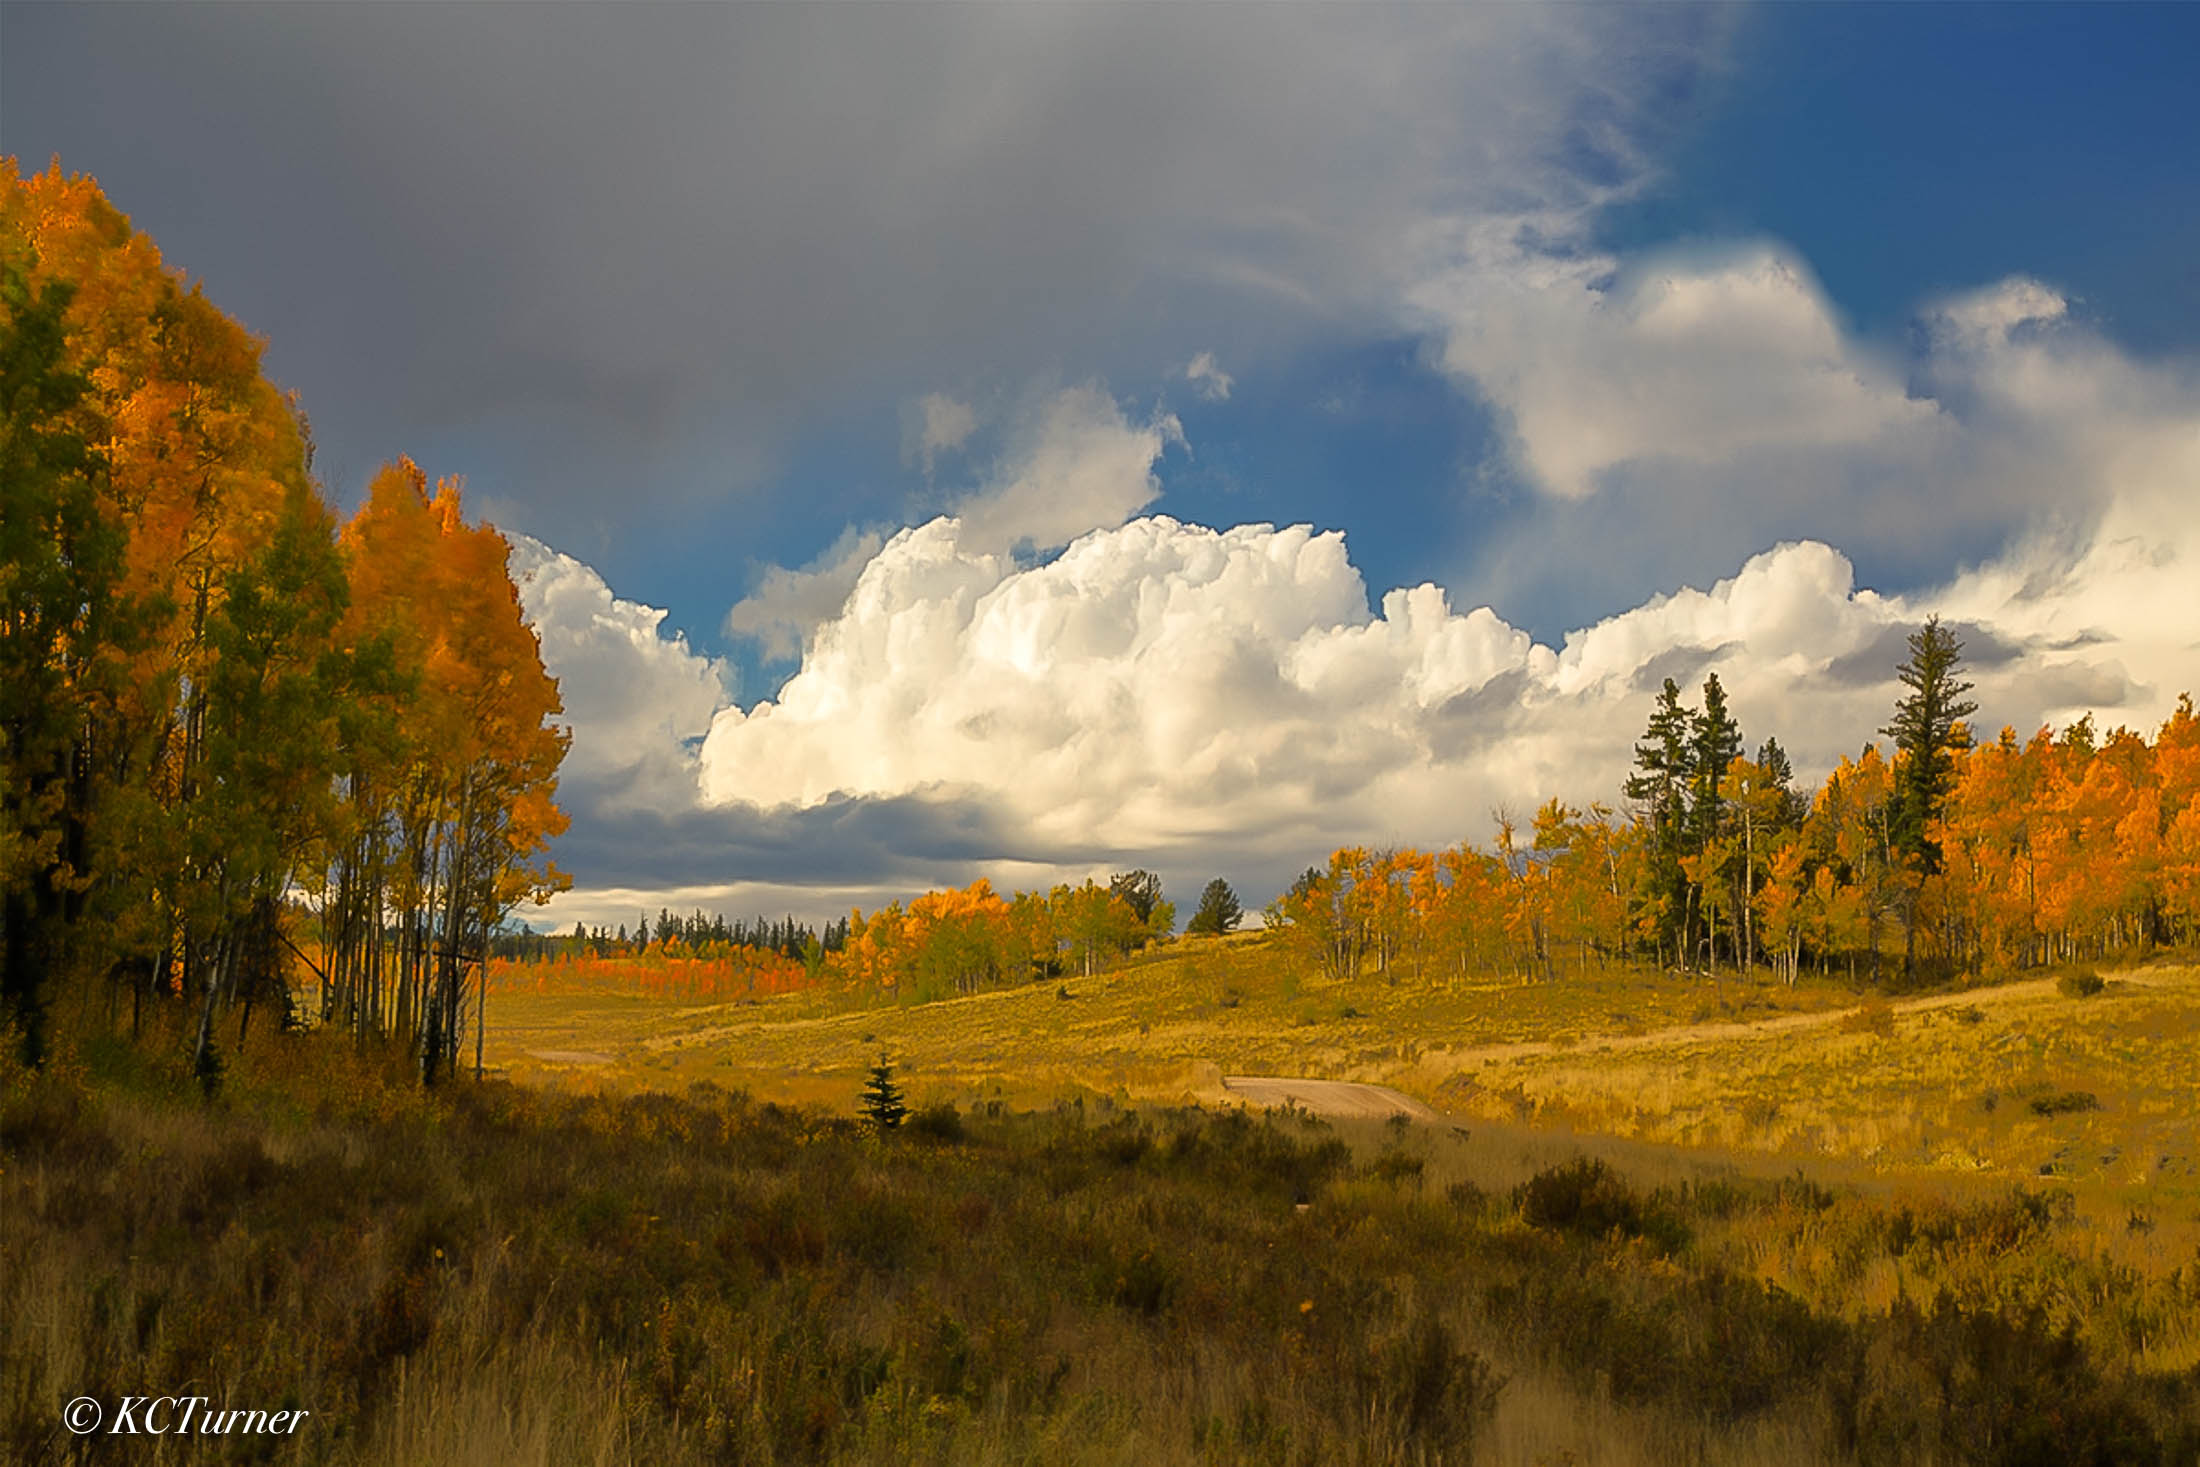 windy, open ranges, forests, Colorado, Lost Creek Wilderness, Pike National Forest, panorama, photo